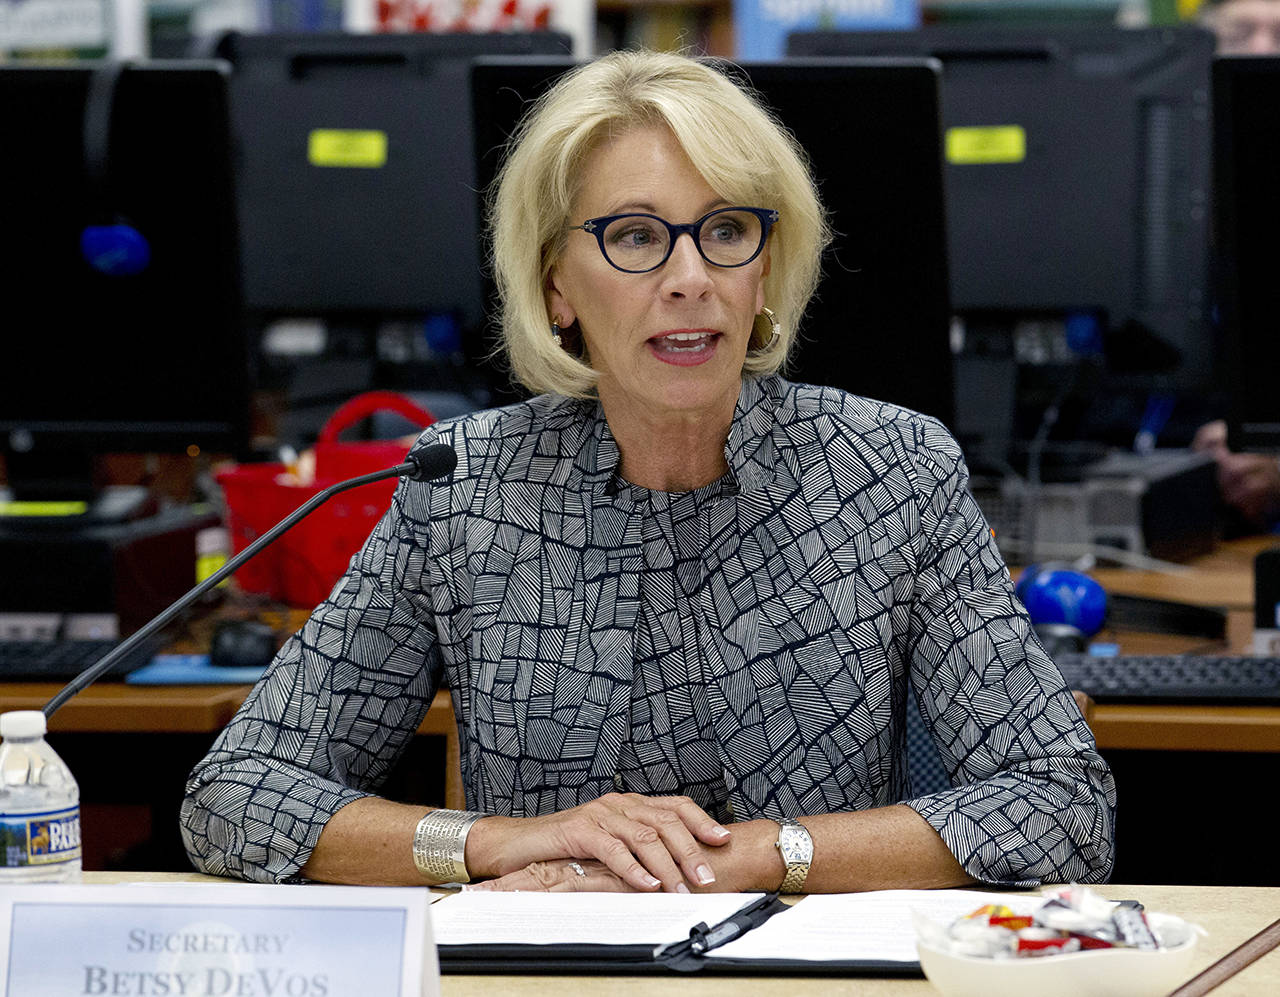 In this May 31 photo, Education Secretary Betsy DeVos speaks during a visit of the Federal School Safety Commission at Hebron Harman Elementary School in Hanover, Maryland. (AP Photo/Jose Luis Magana, File)